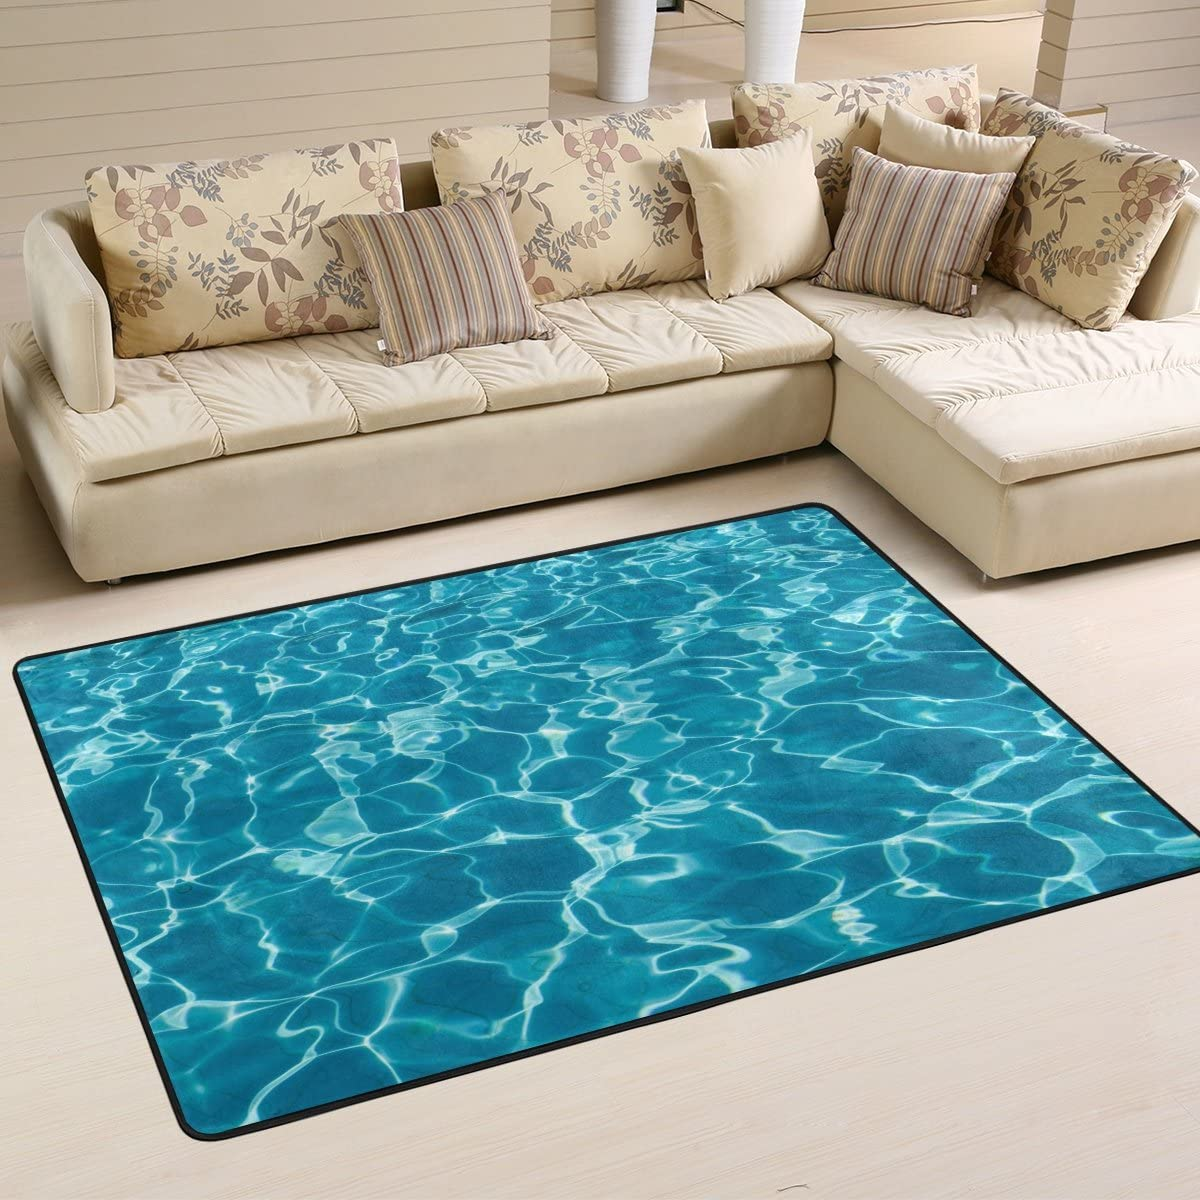 ALAZA Non Slip Area Rug Home Decor, Hipster Turquoise Ocean Wave Durable Floor Mat Living Room Bedroom Carpets Doormats 36 x 24 inches